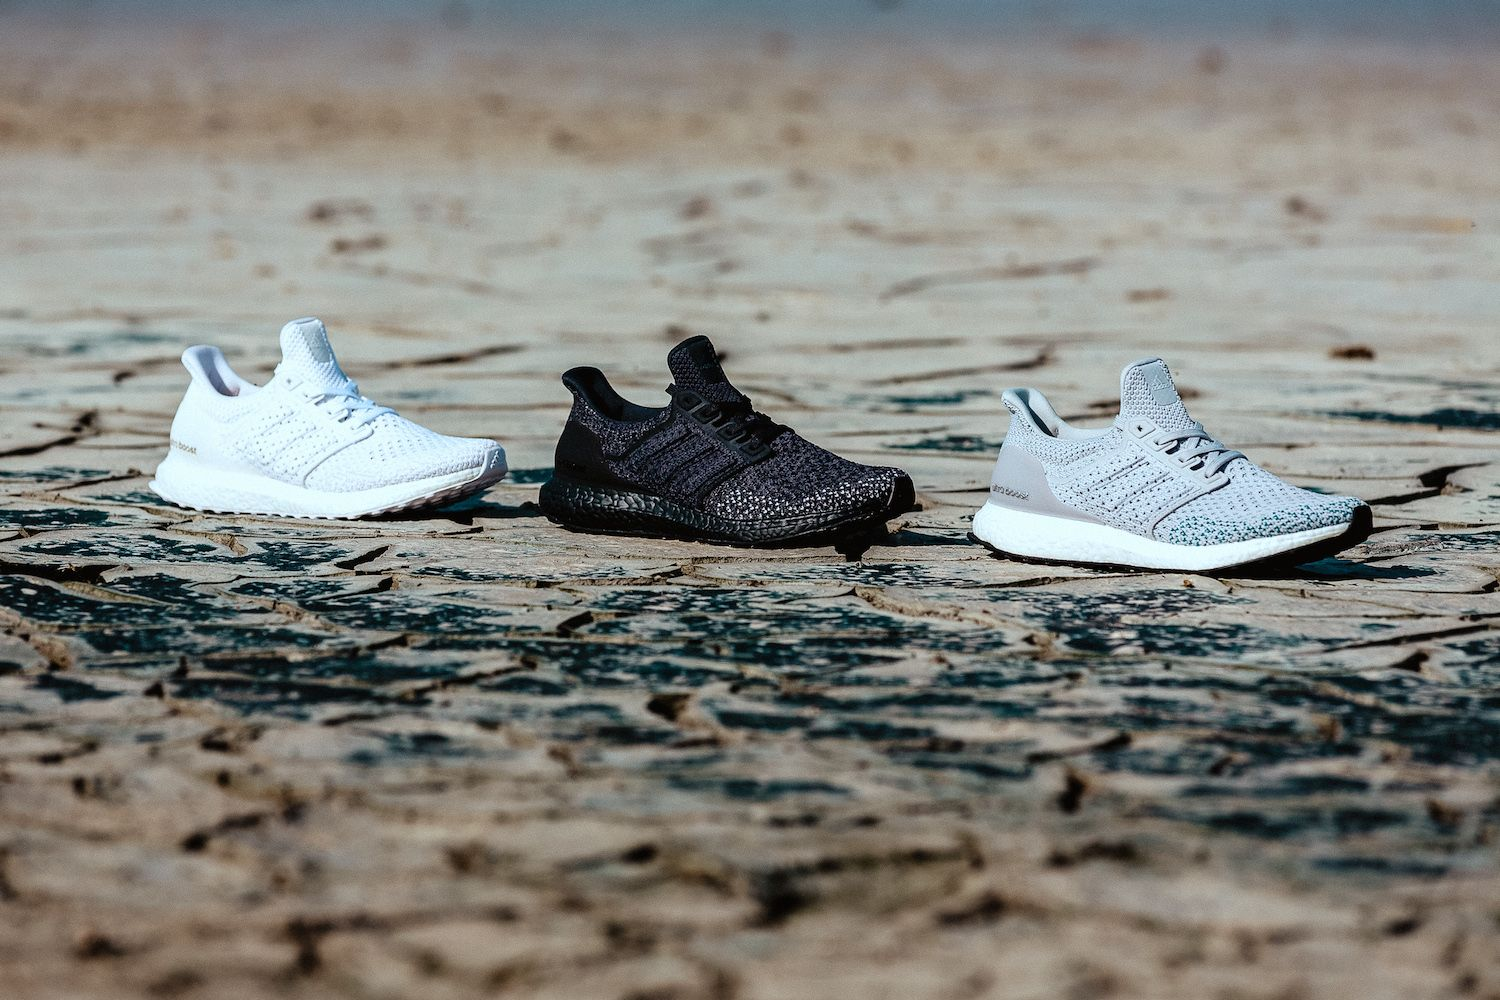 c06da4329be8d ... Cop adidas s Most Breathable Ultraboost Yet. The Ultraboost Clima and  Ultraboost X Clima models are introduced